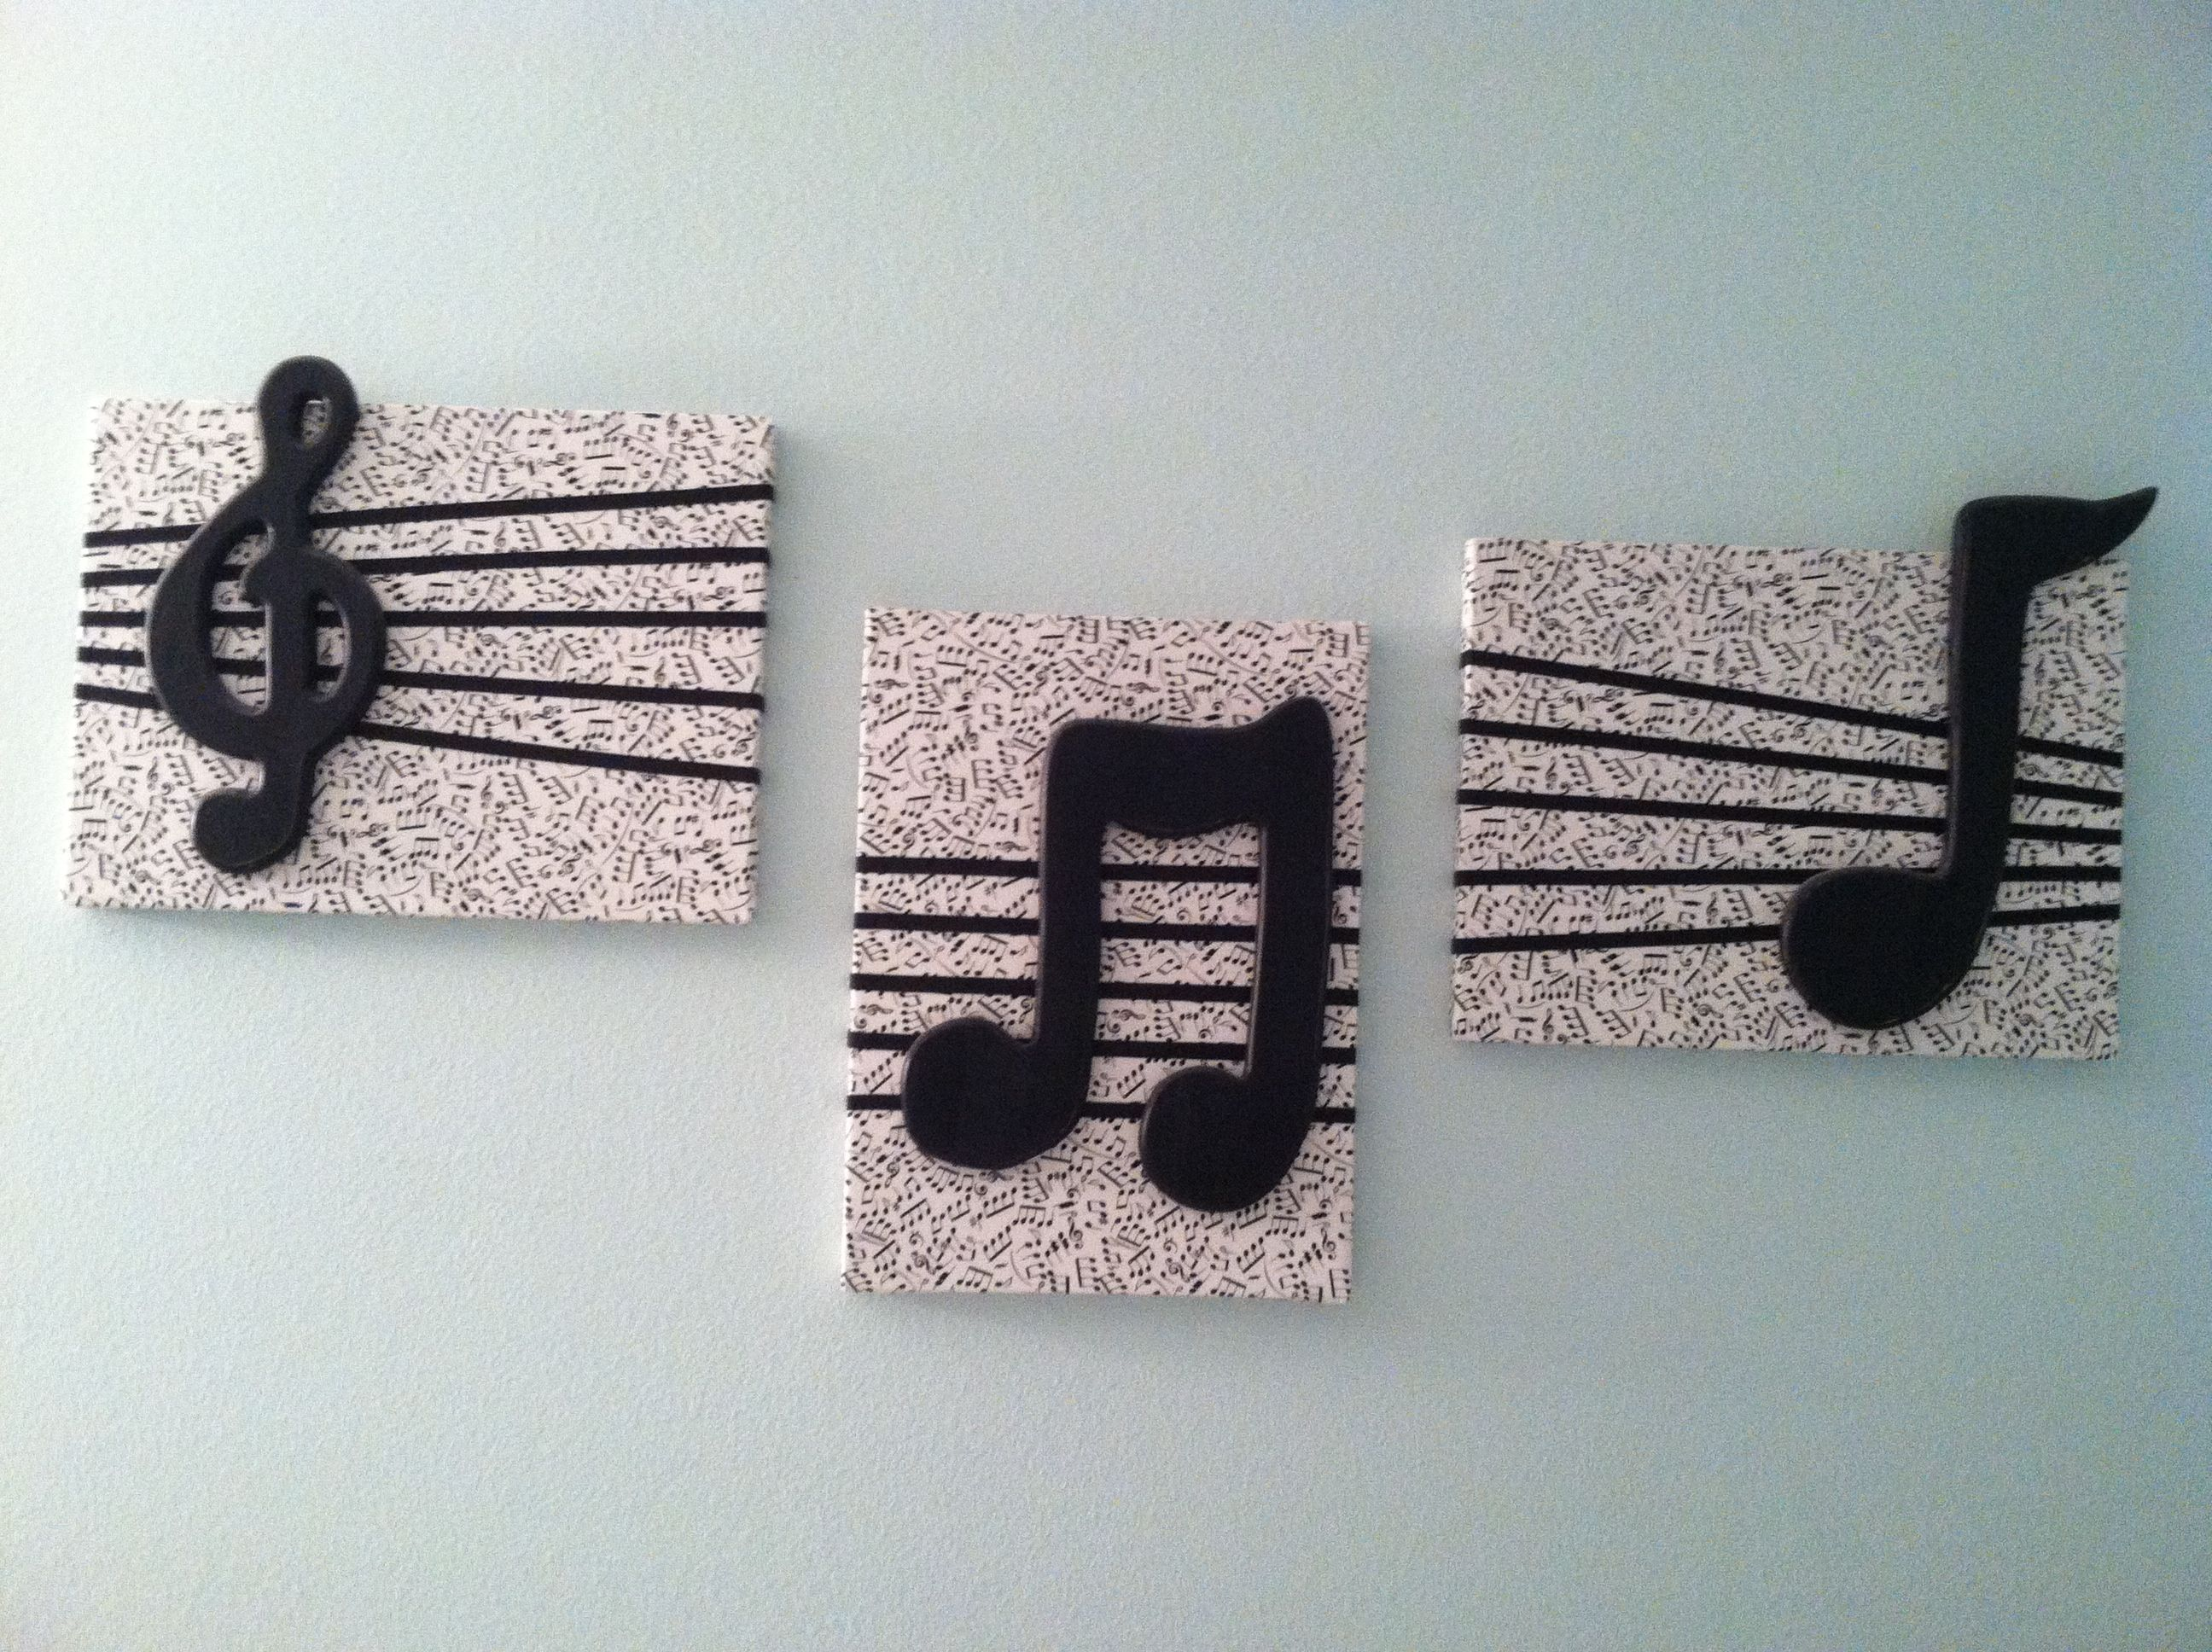 Best 25 music wall decor ideas on pinterest music flower diy wall decor cover canvas squares with music note fabric add black ribbon amipublicfo Images